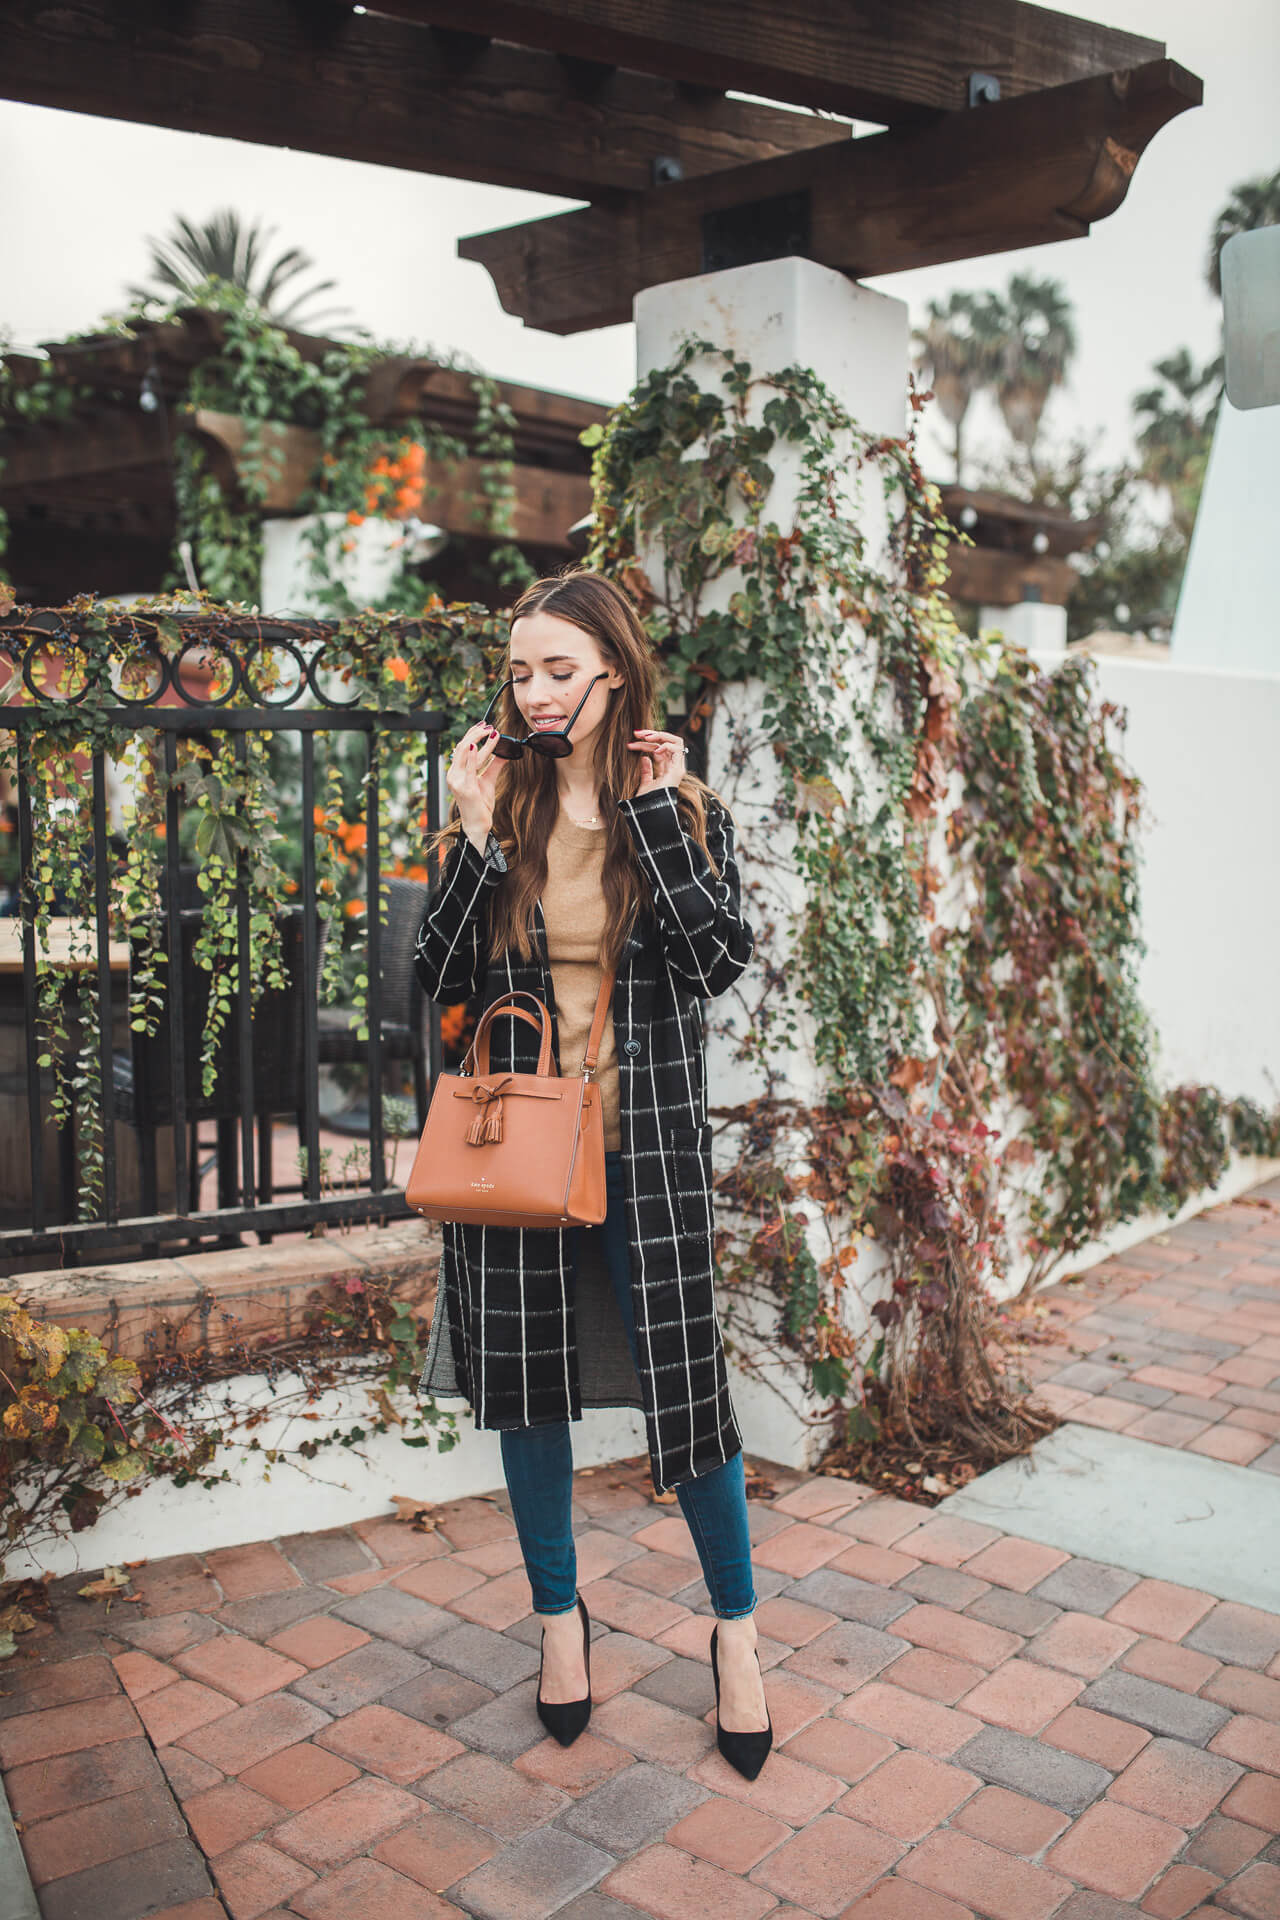 styling this coat from winter to fall